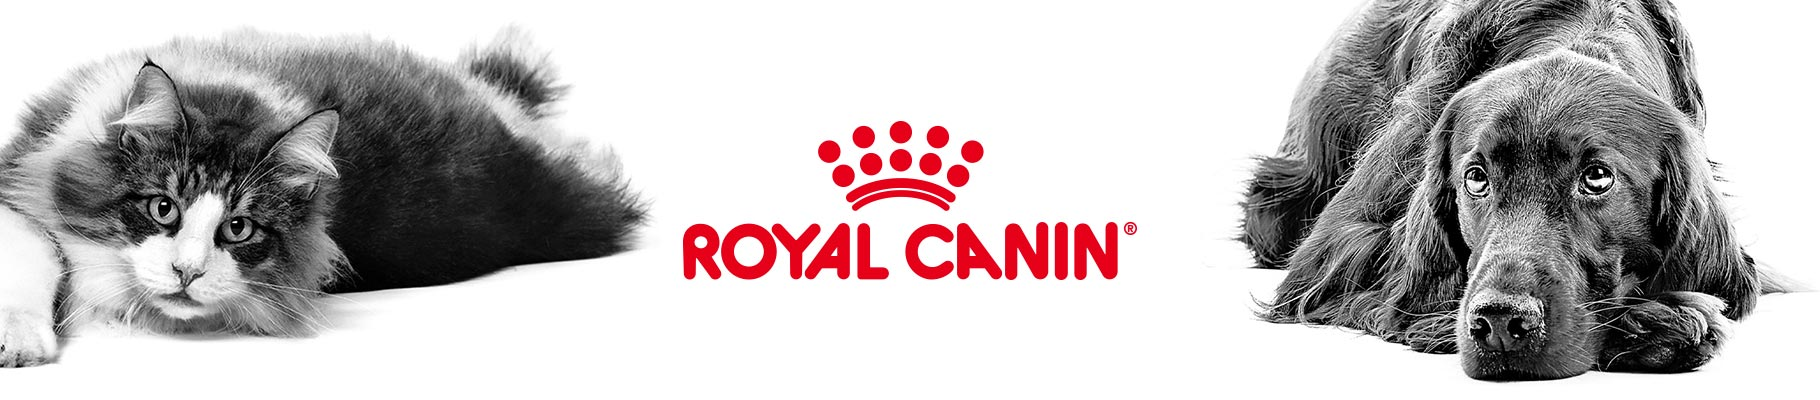 Royal Canin logo with a dog and cat in black and white wide banner